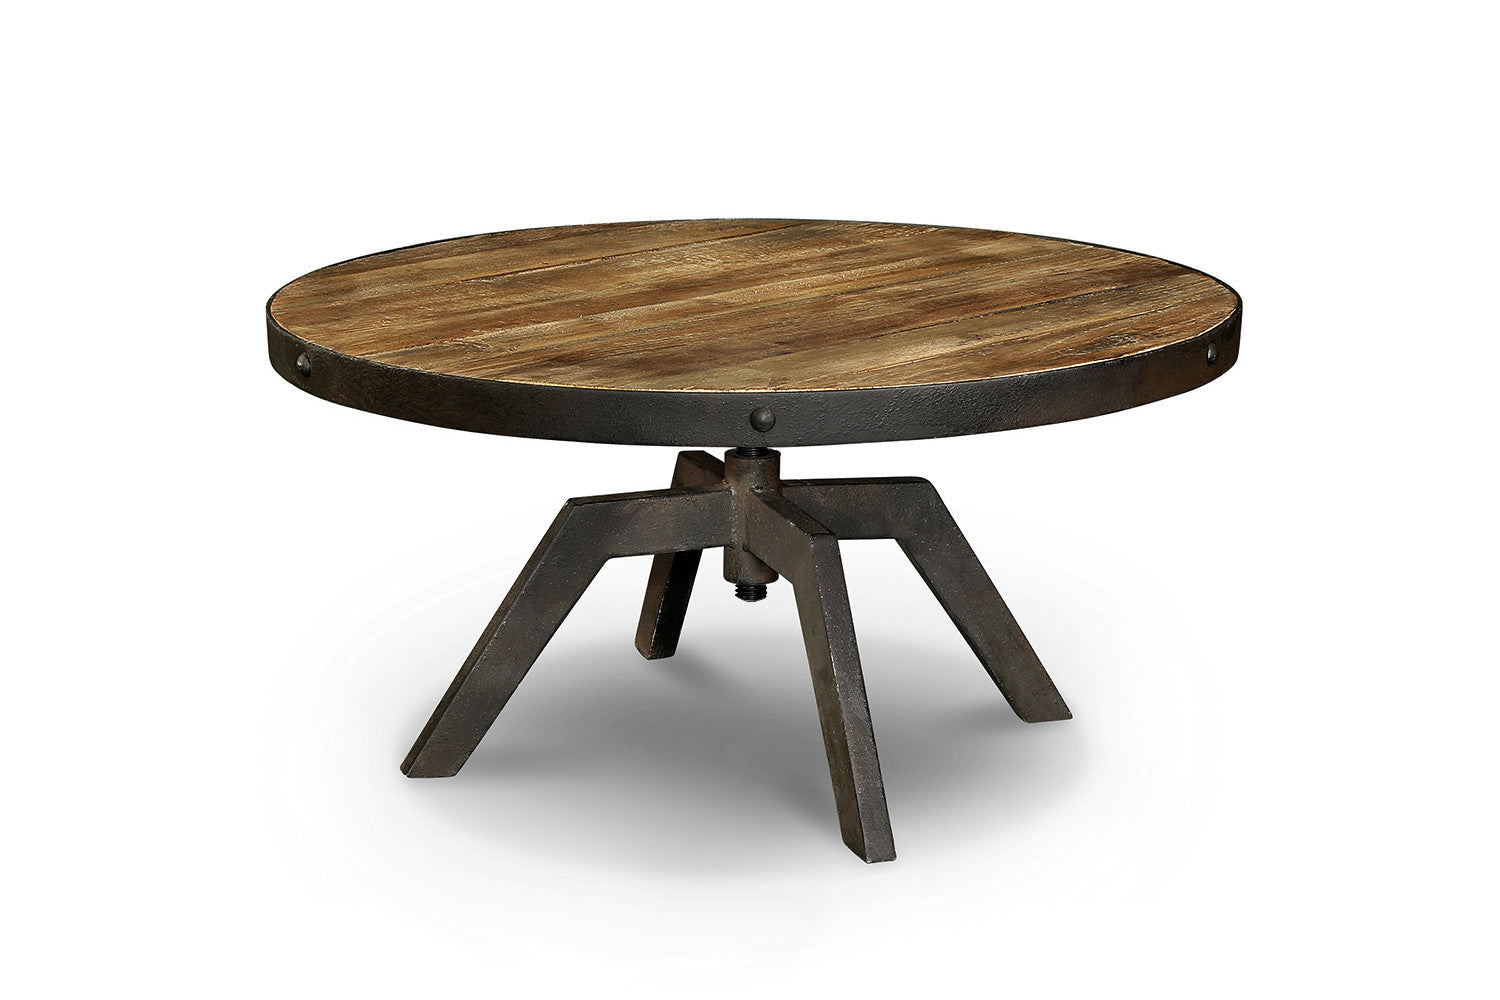 Table basse industrielle en bois et m tal tb03 rose - Tables basses industrielles ...